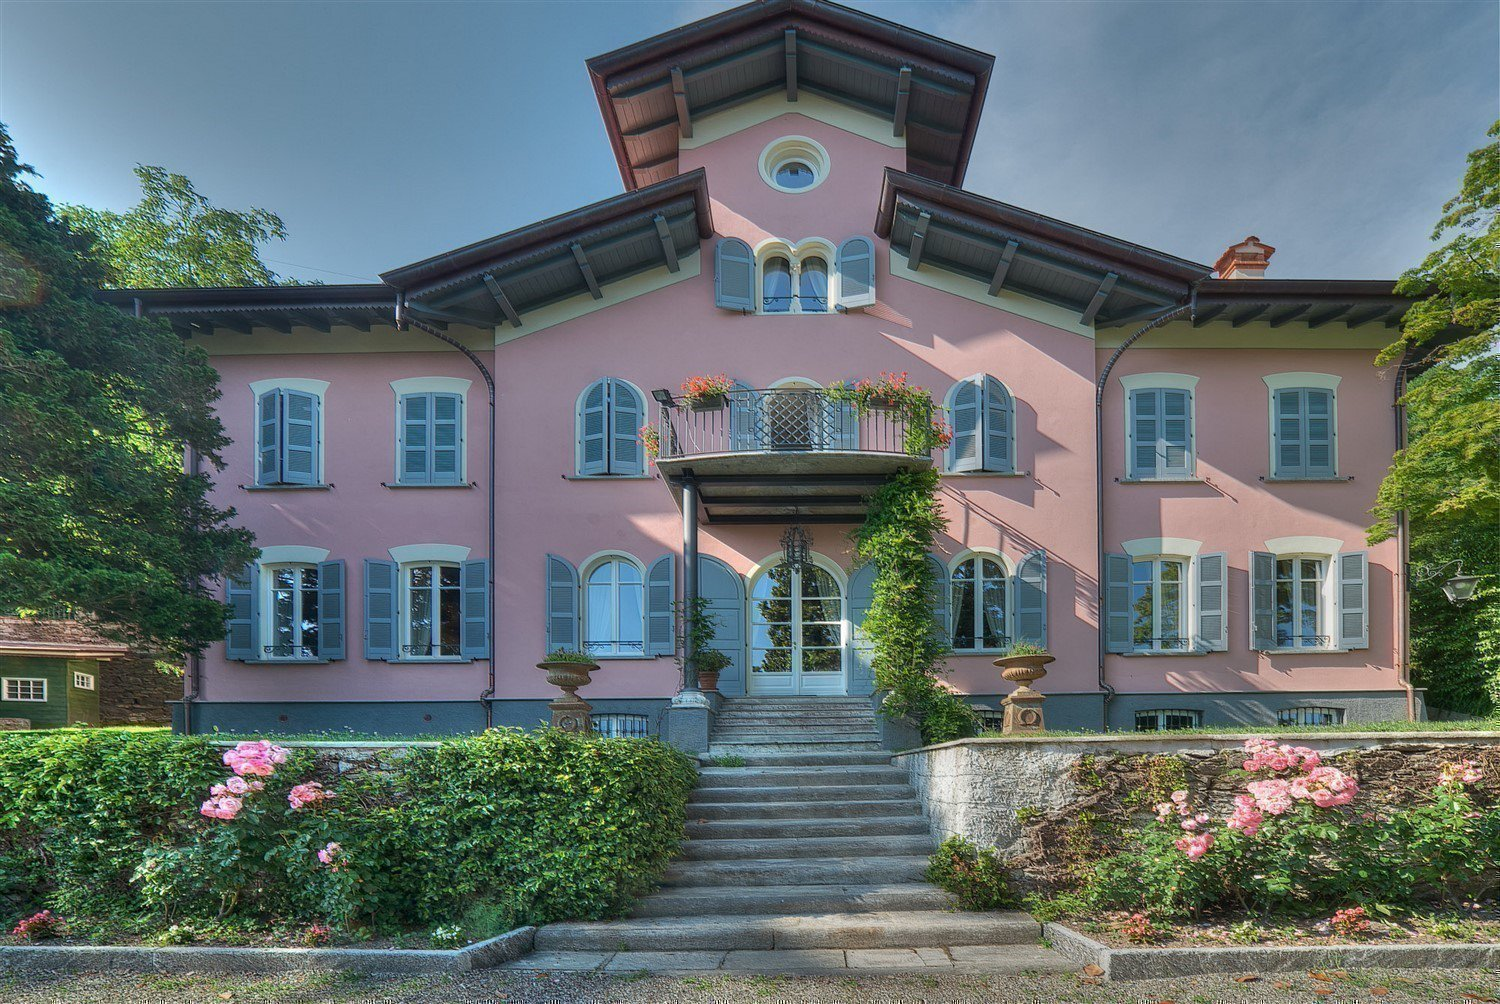 Historic villa with guesthouse and land for sale in Verbania - facade